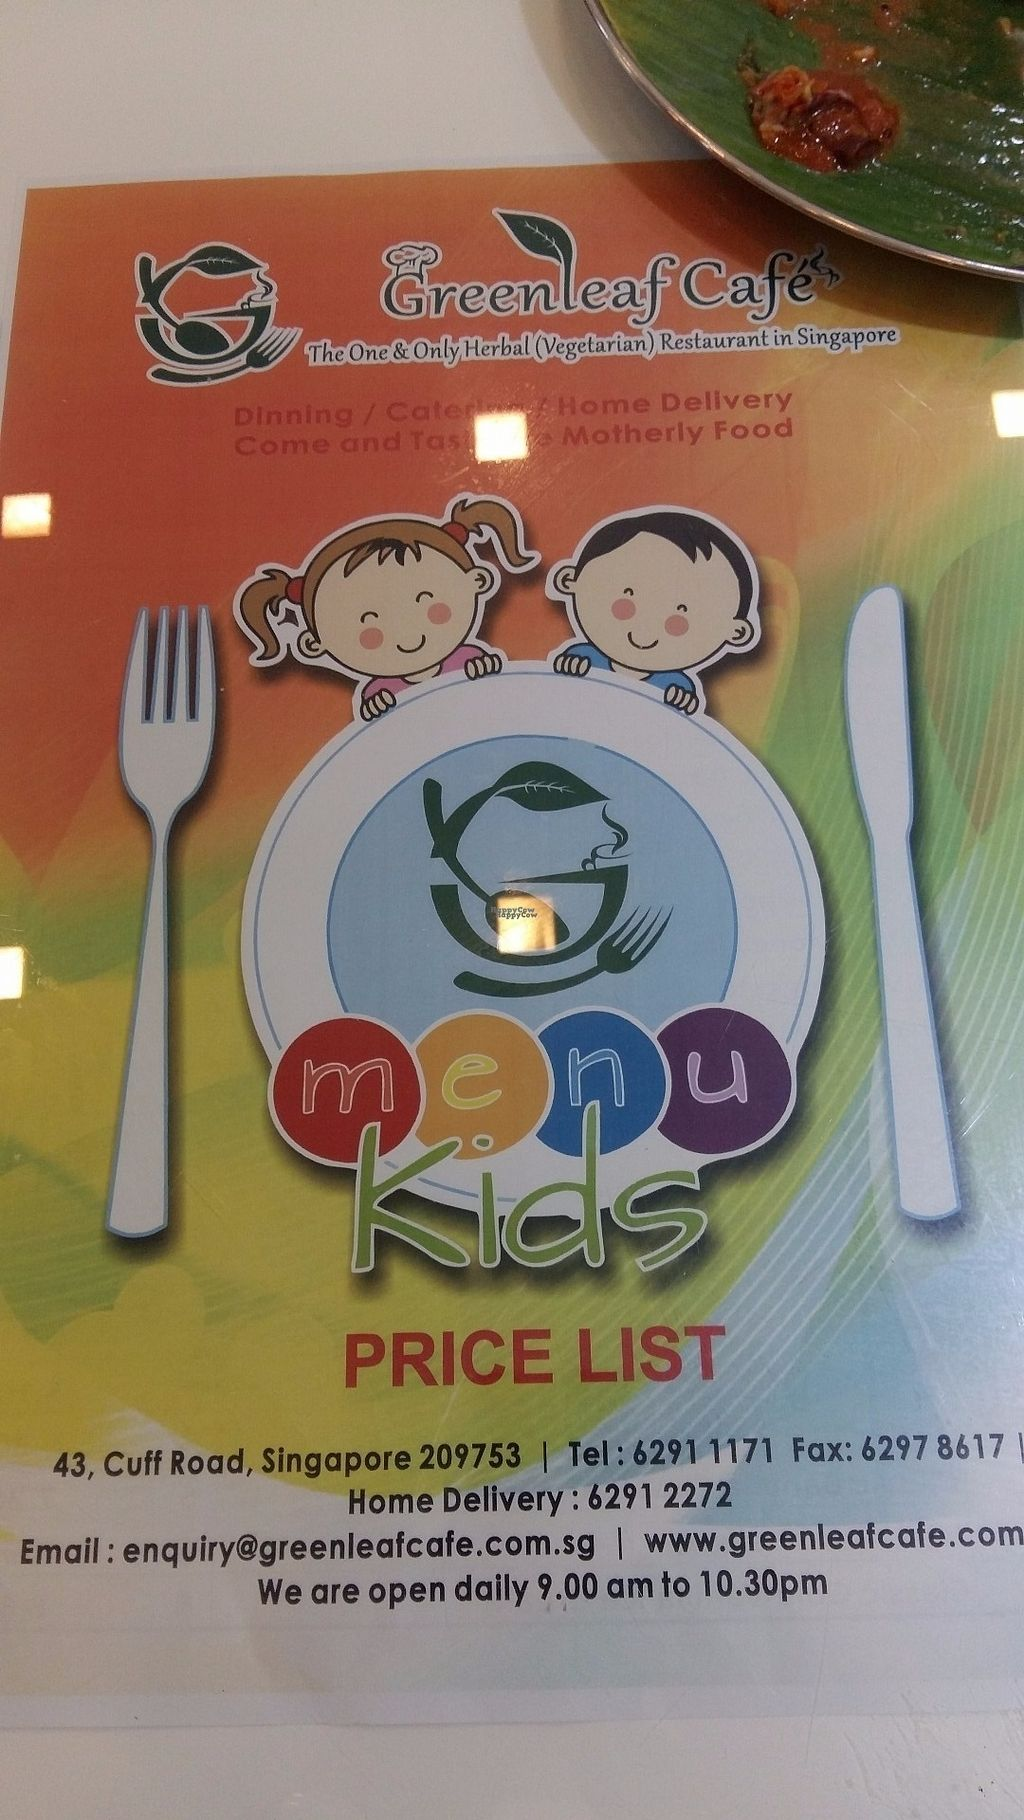 """Photo of Greenleaf Cafe  by <a href=""""/members/profile/Sai79"""">Sai79</a> <br/>Kids menu with kids portion and kids prices :)  <br/> October 4, 2016  - <a href='/contact/abuse/image/66186/179611'>Report</a>"""